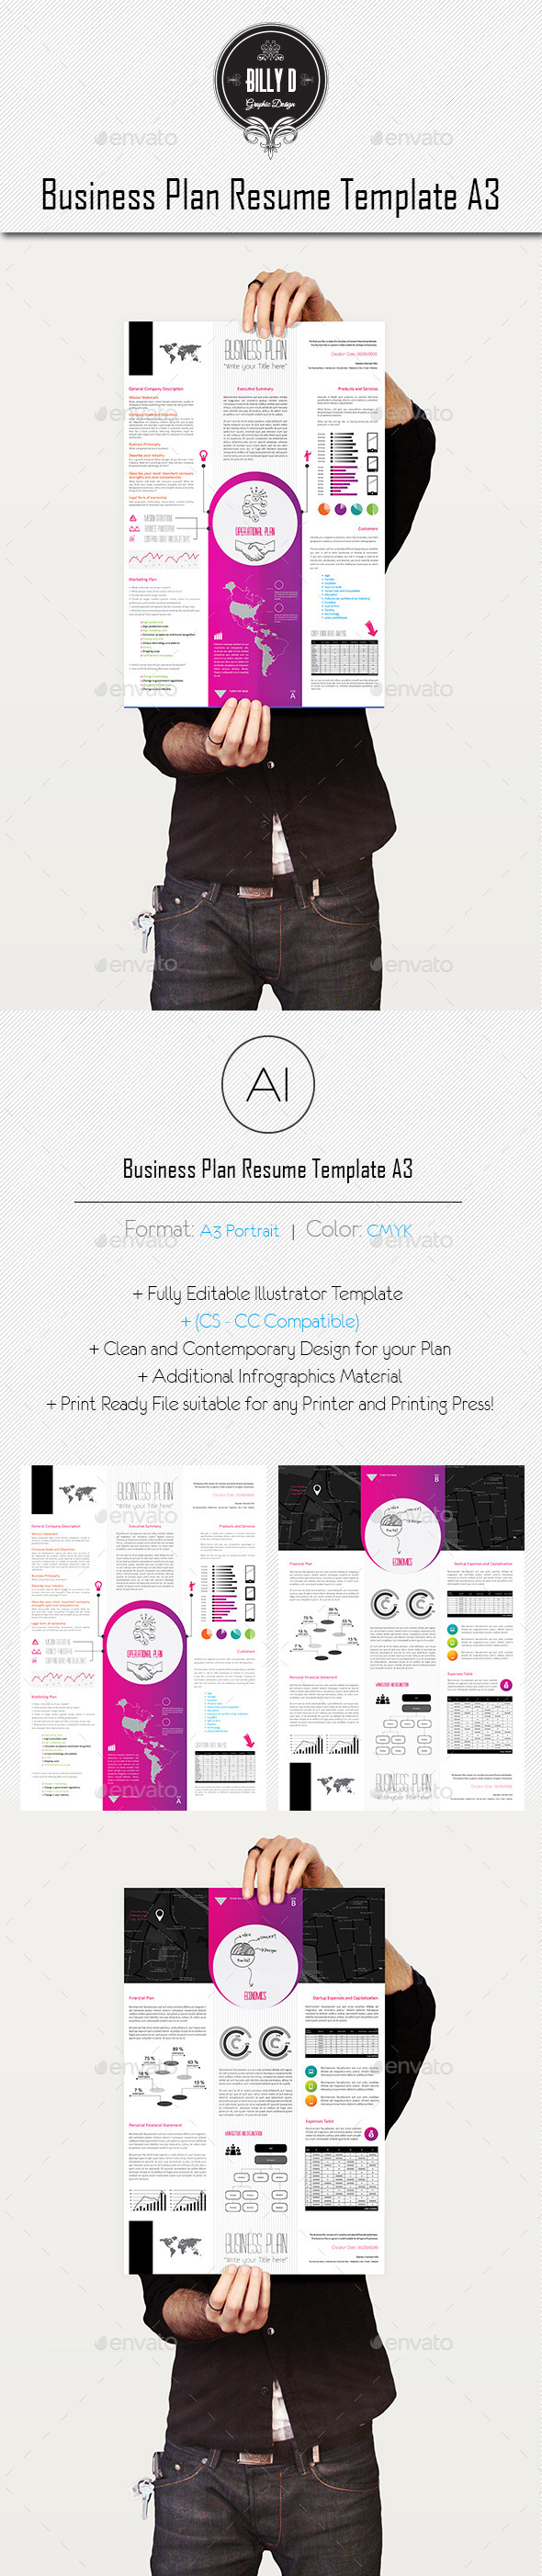 GraphicRiver Business Plan Resume Template A3 8901699